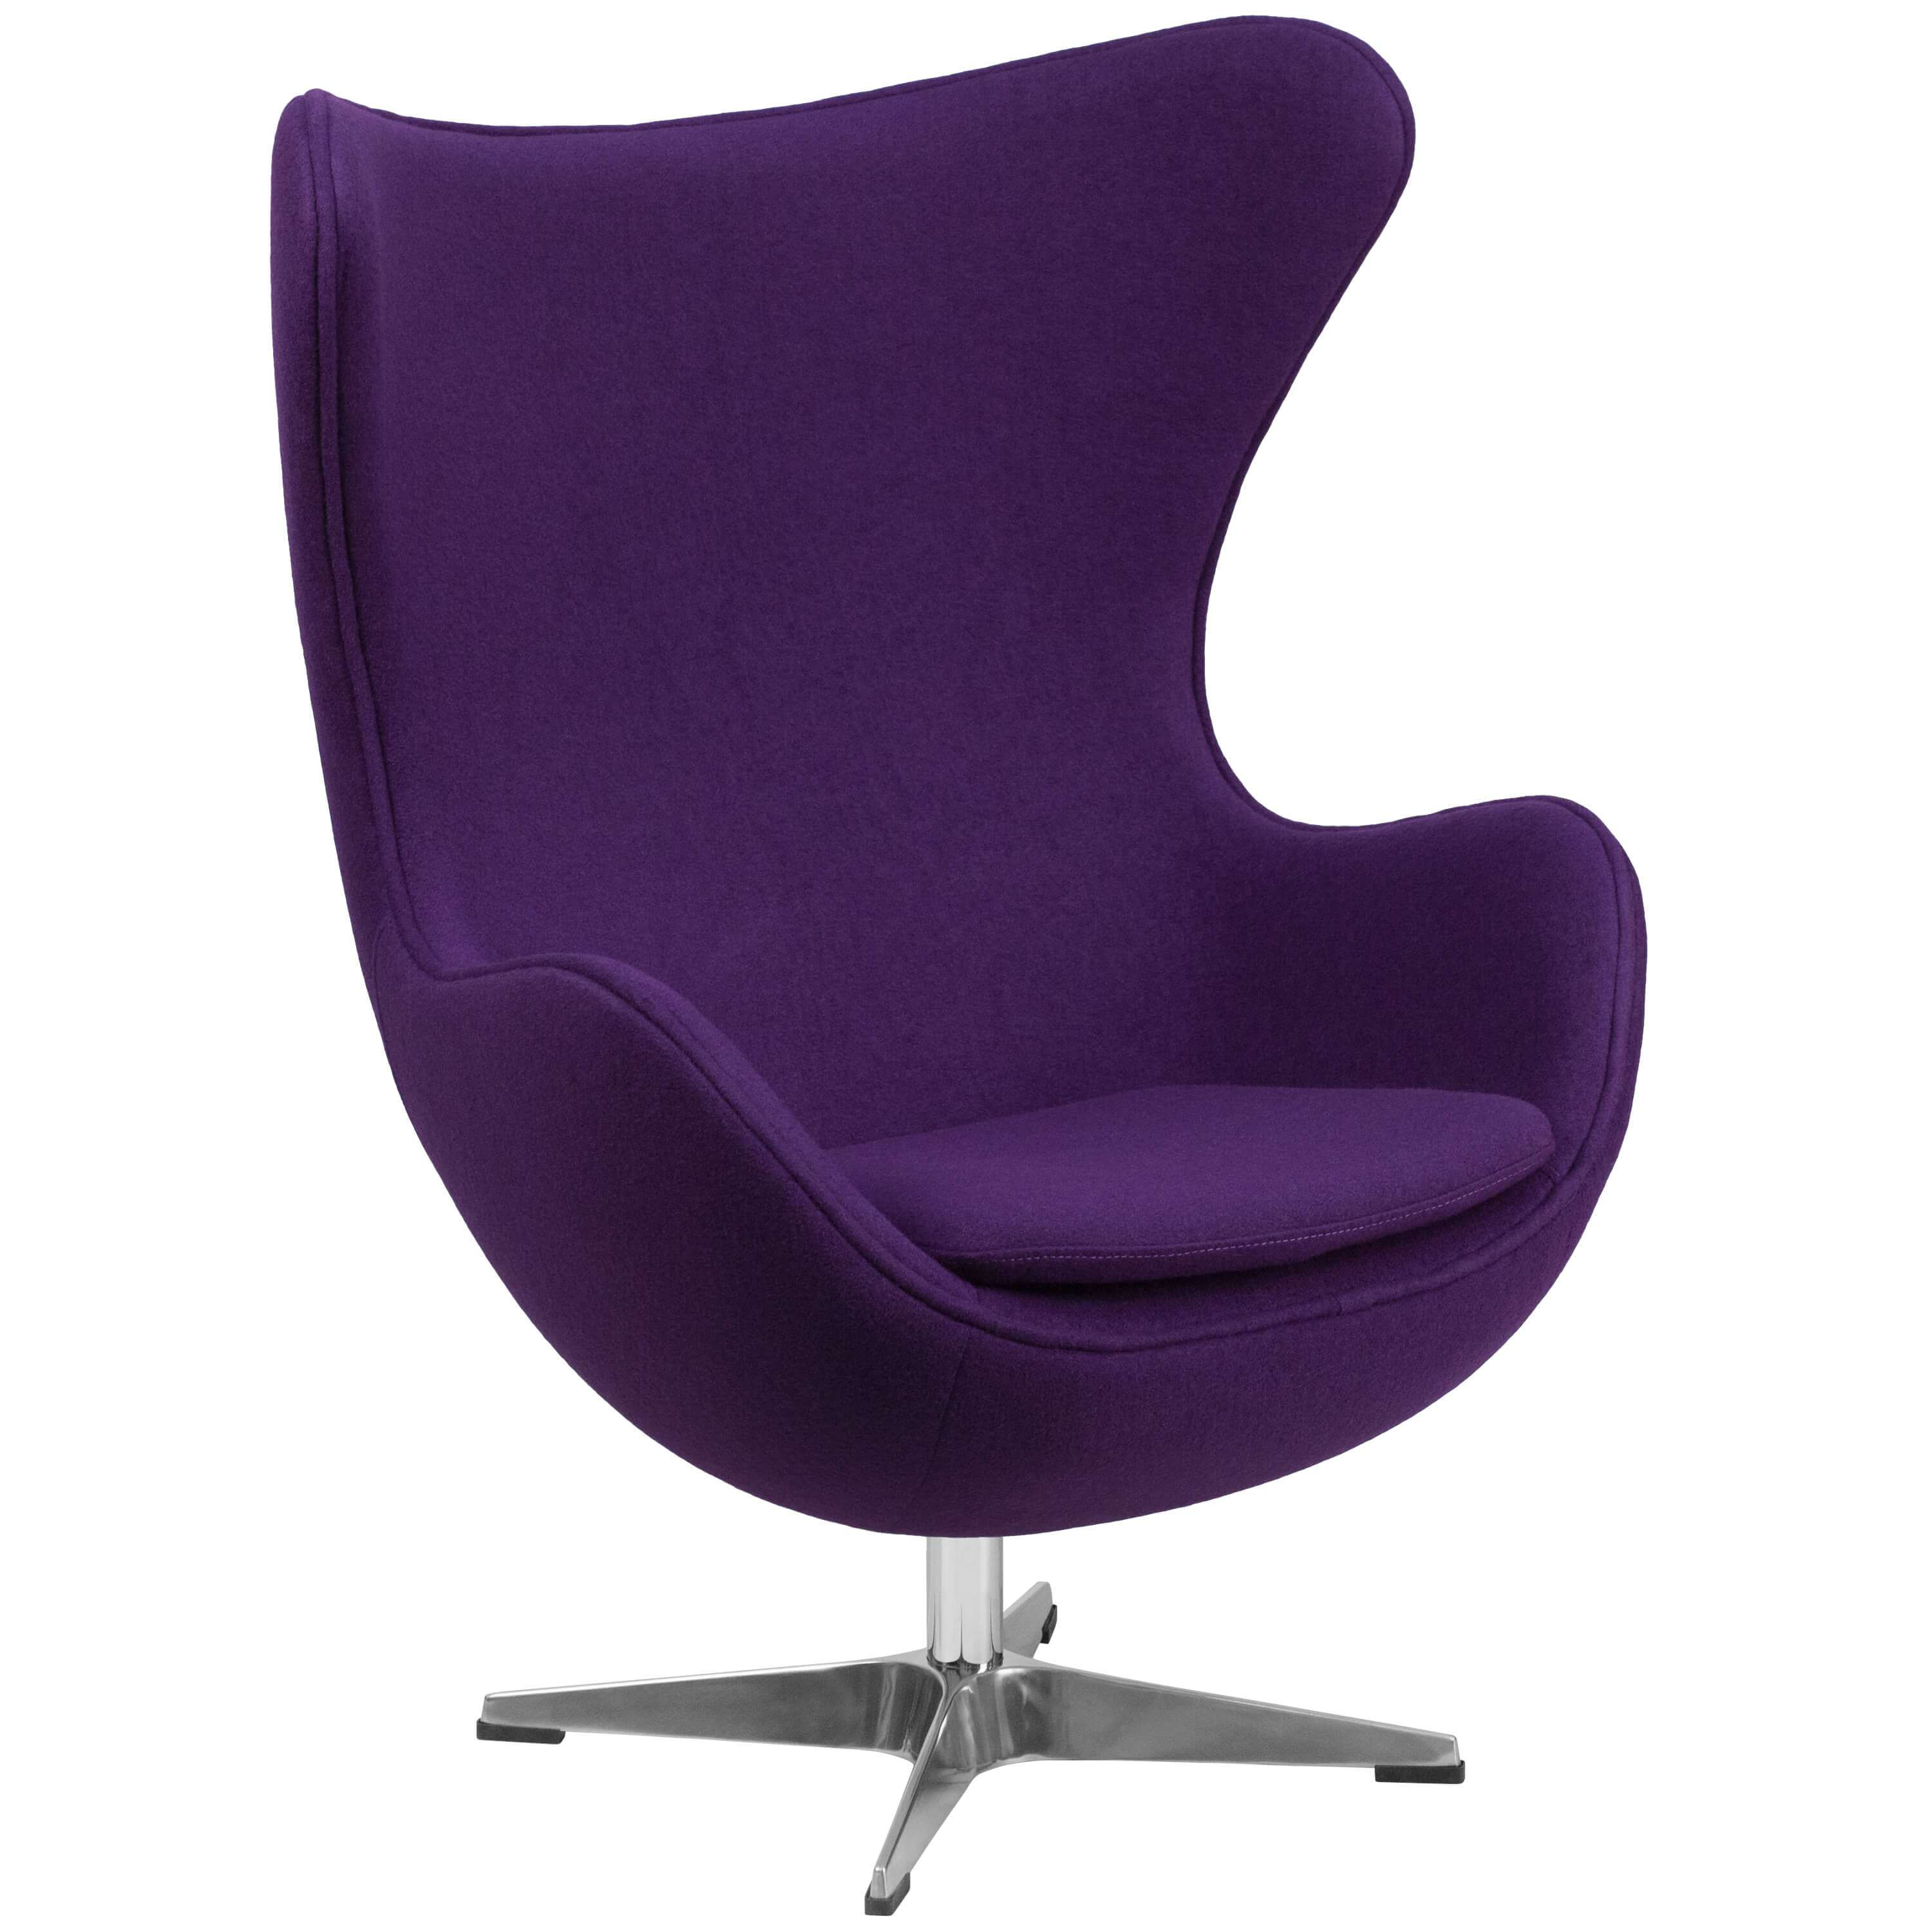 Office lounge chairs CUB ZB 16 GG ALF